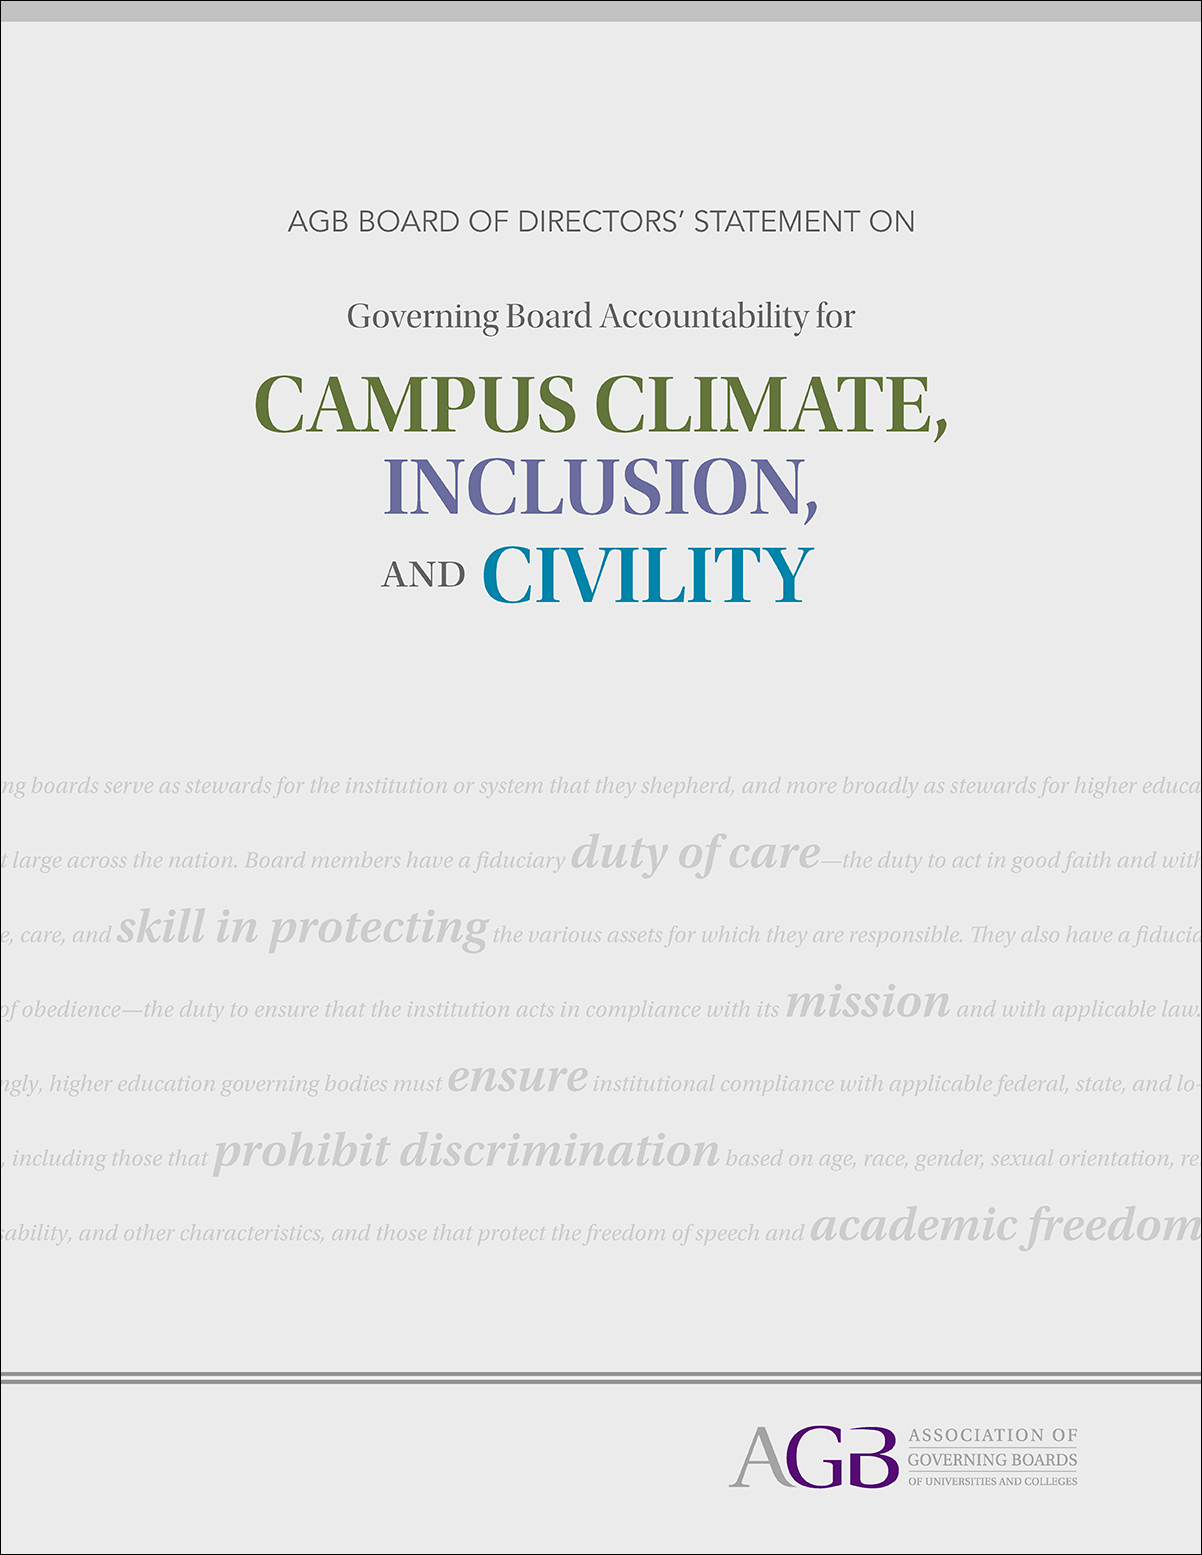 AGB Board of Directors' Statement on Governing Board Accountability for Campus Climate, Inclusion, and Civility